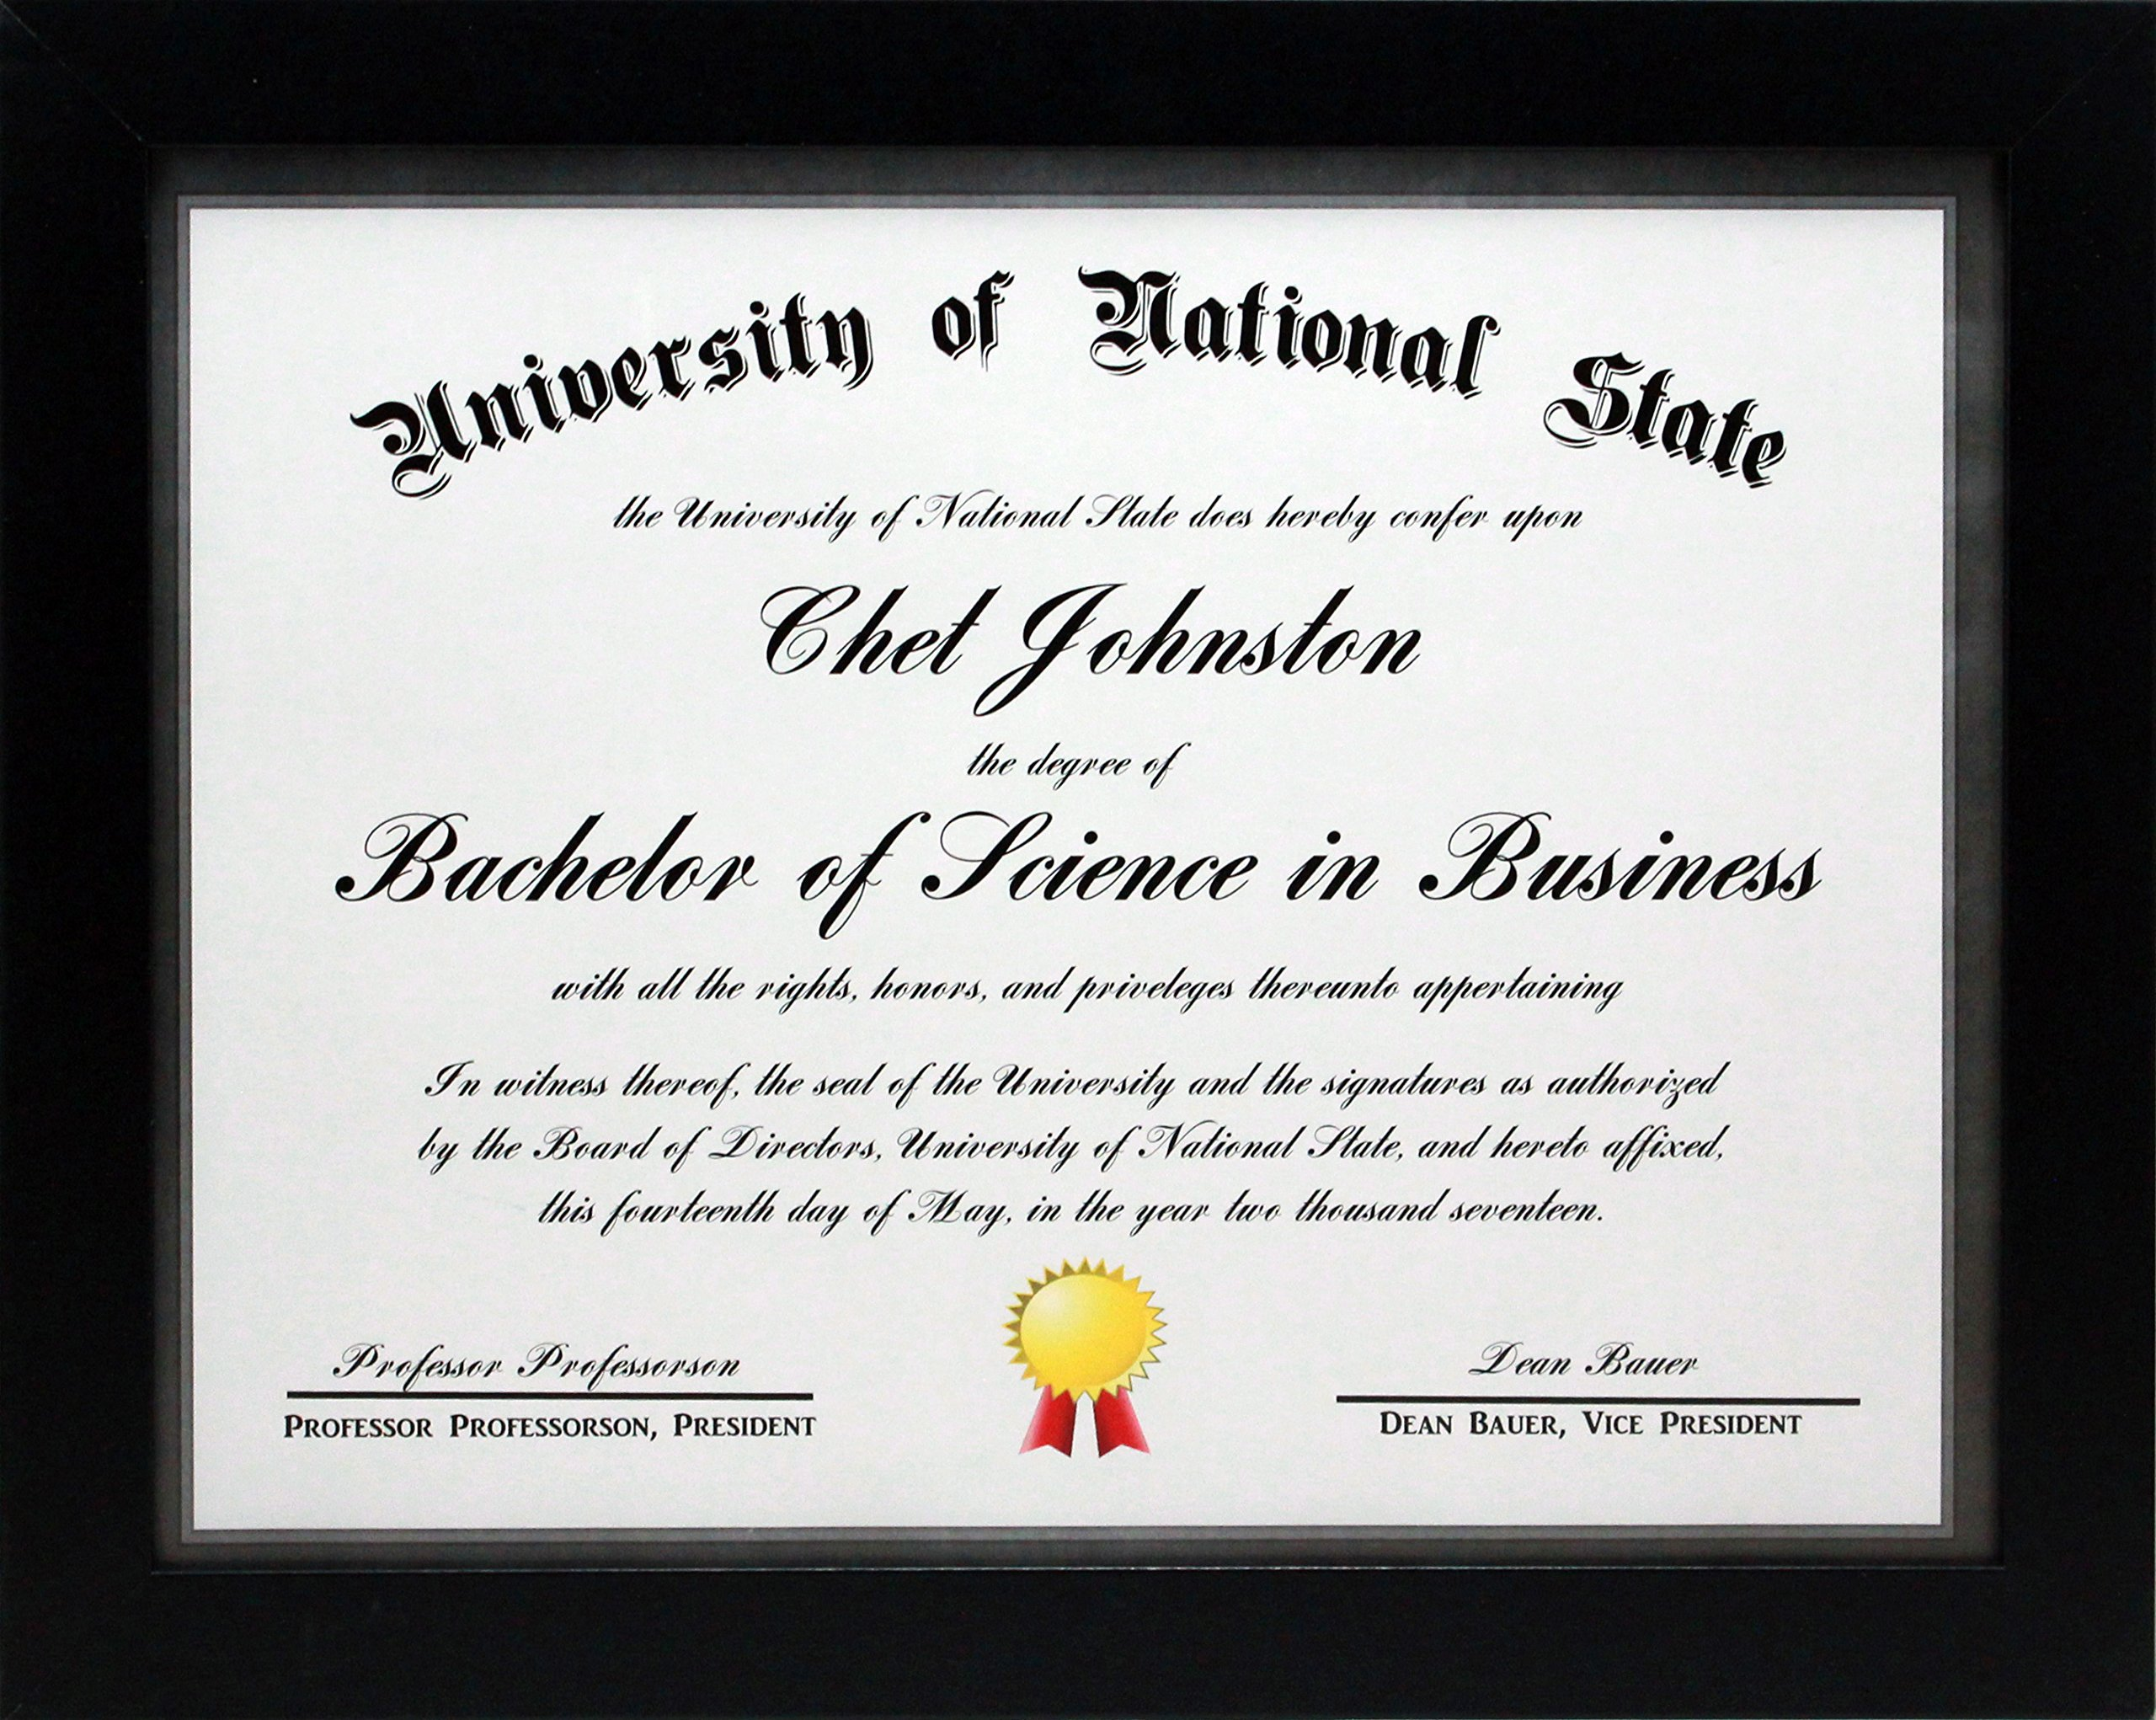 8.5x11 Black Gallery Certificate and Document Frame - Wide Molding - Includes Both Attached Hanging Hardware and Desktop Easel - Award, Certificates, Documents, a Diploma, or a Photo 8.5 x 11 by Smashed Banana